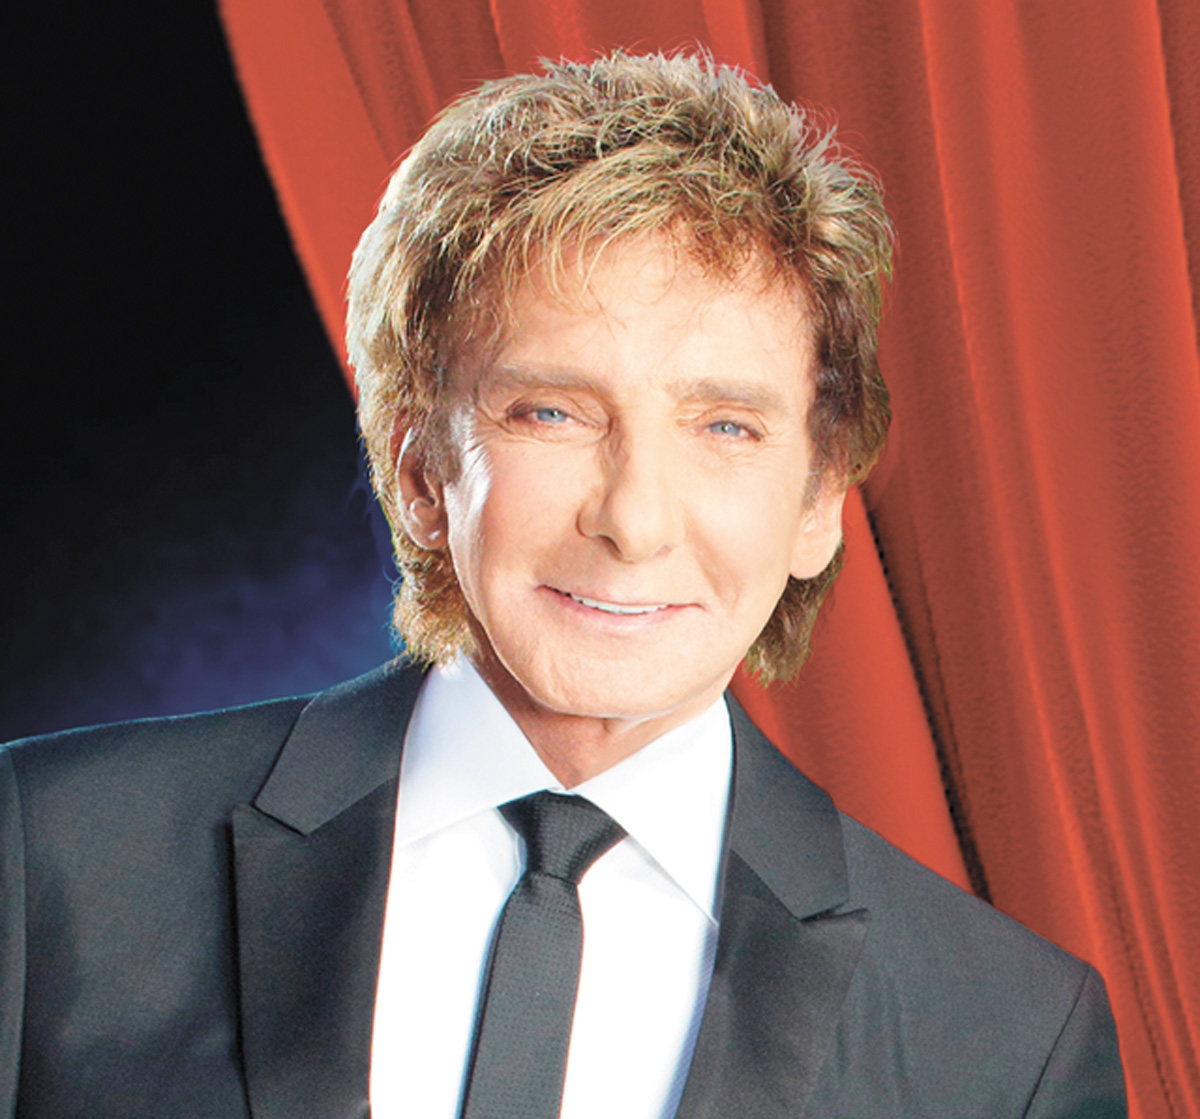 Barry Manilow is coming to the 02 Arena